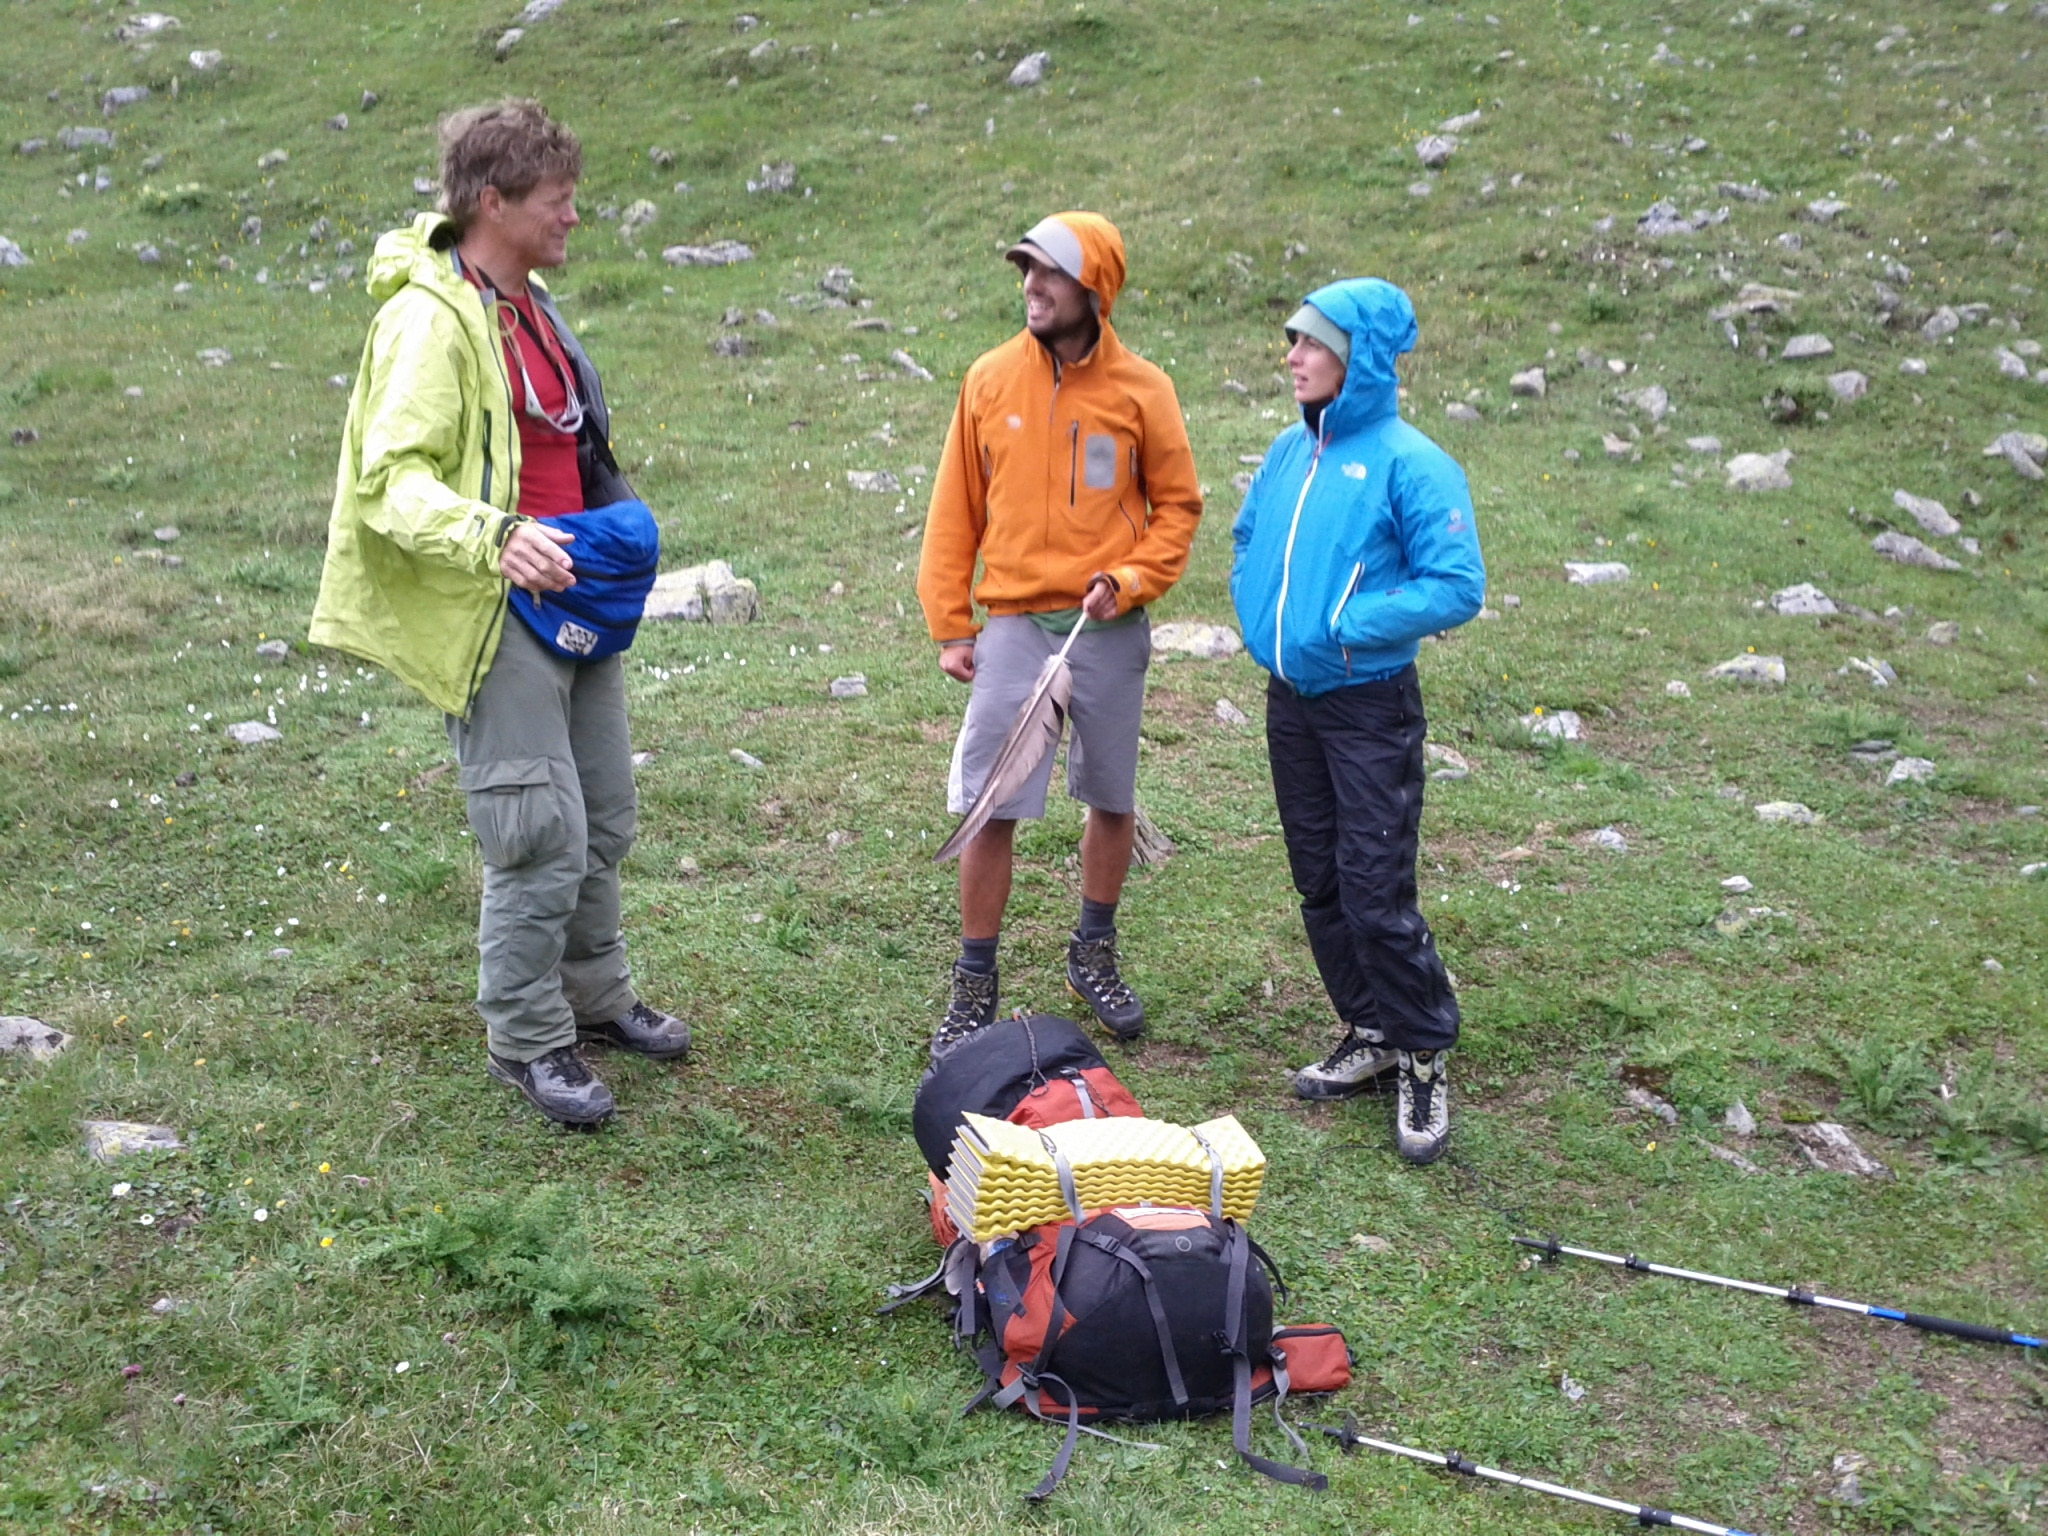 Meeting Elias Meyer and Jenny Kehl at their campsite on Lai da Fasch Alba during their Graubünden border tour.